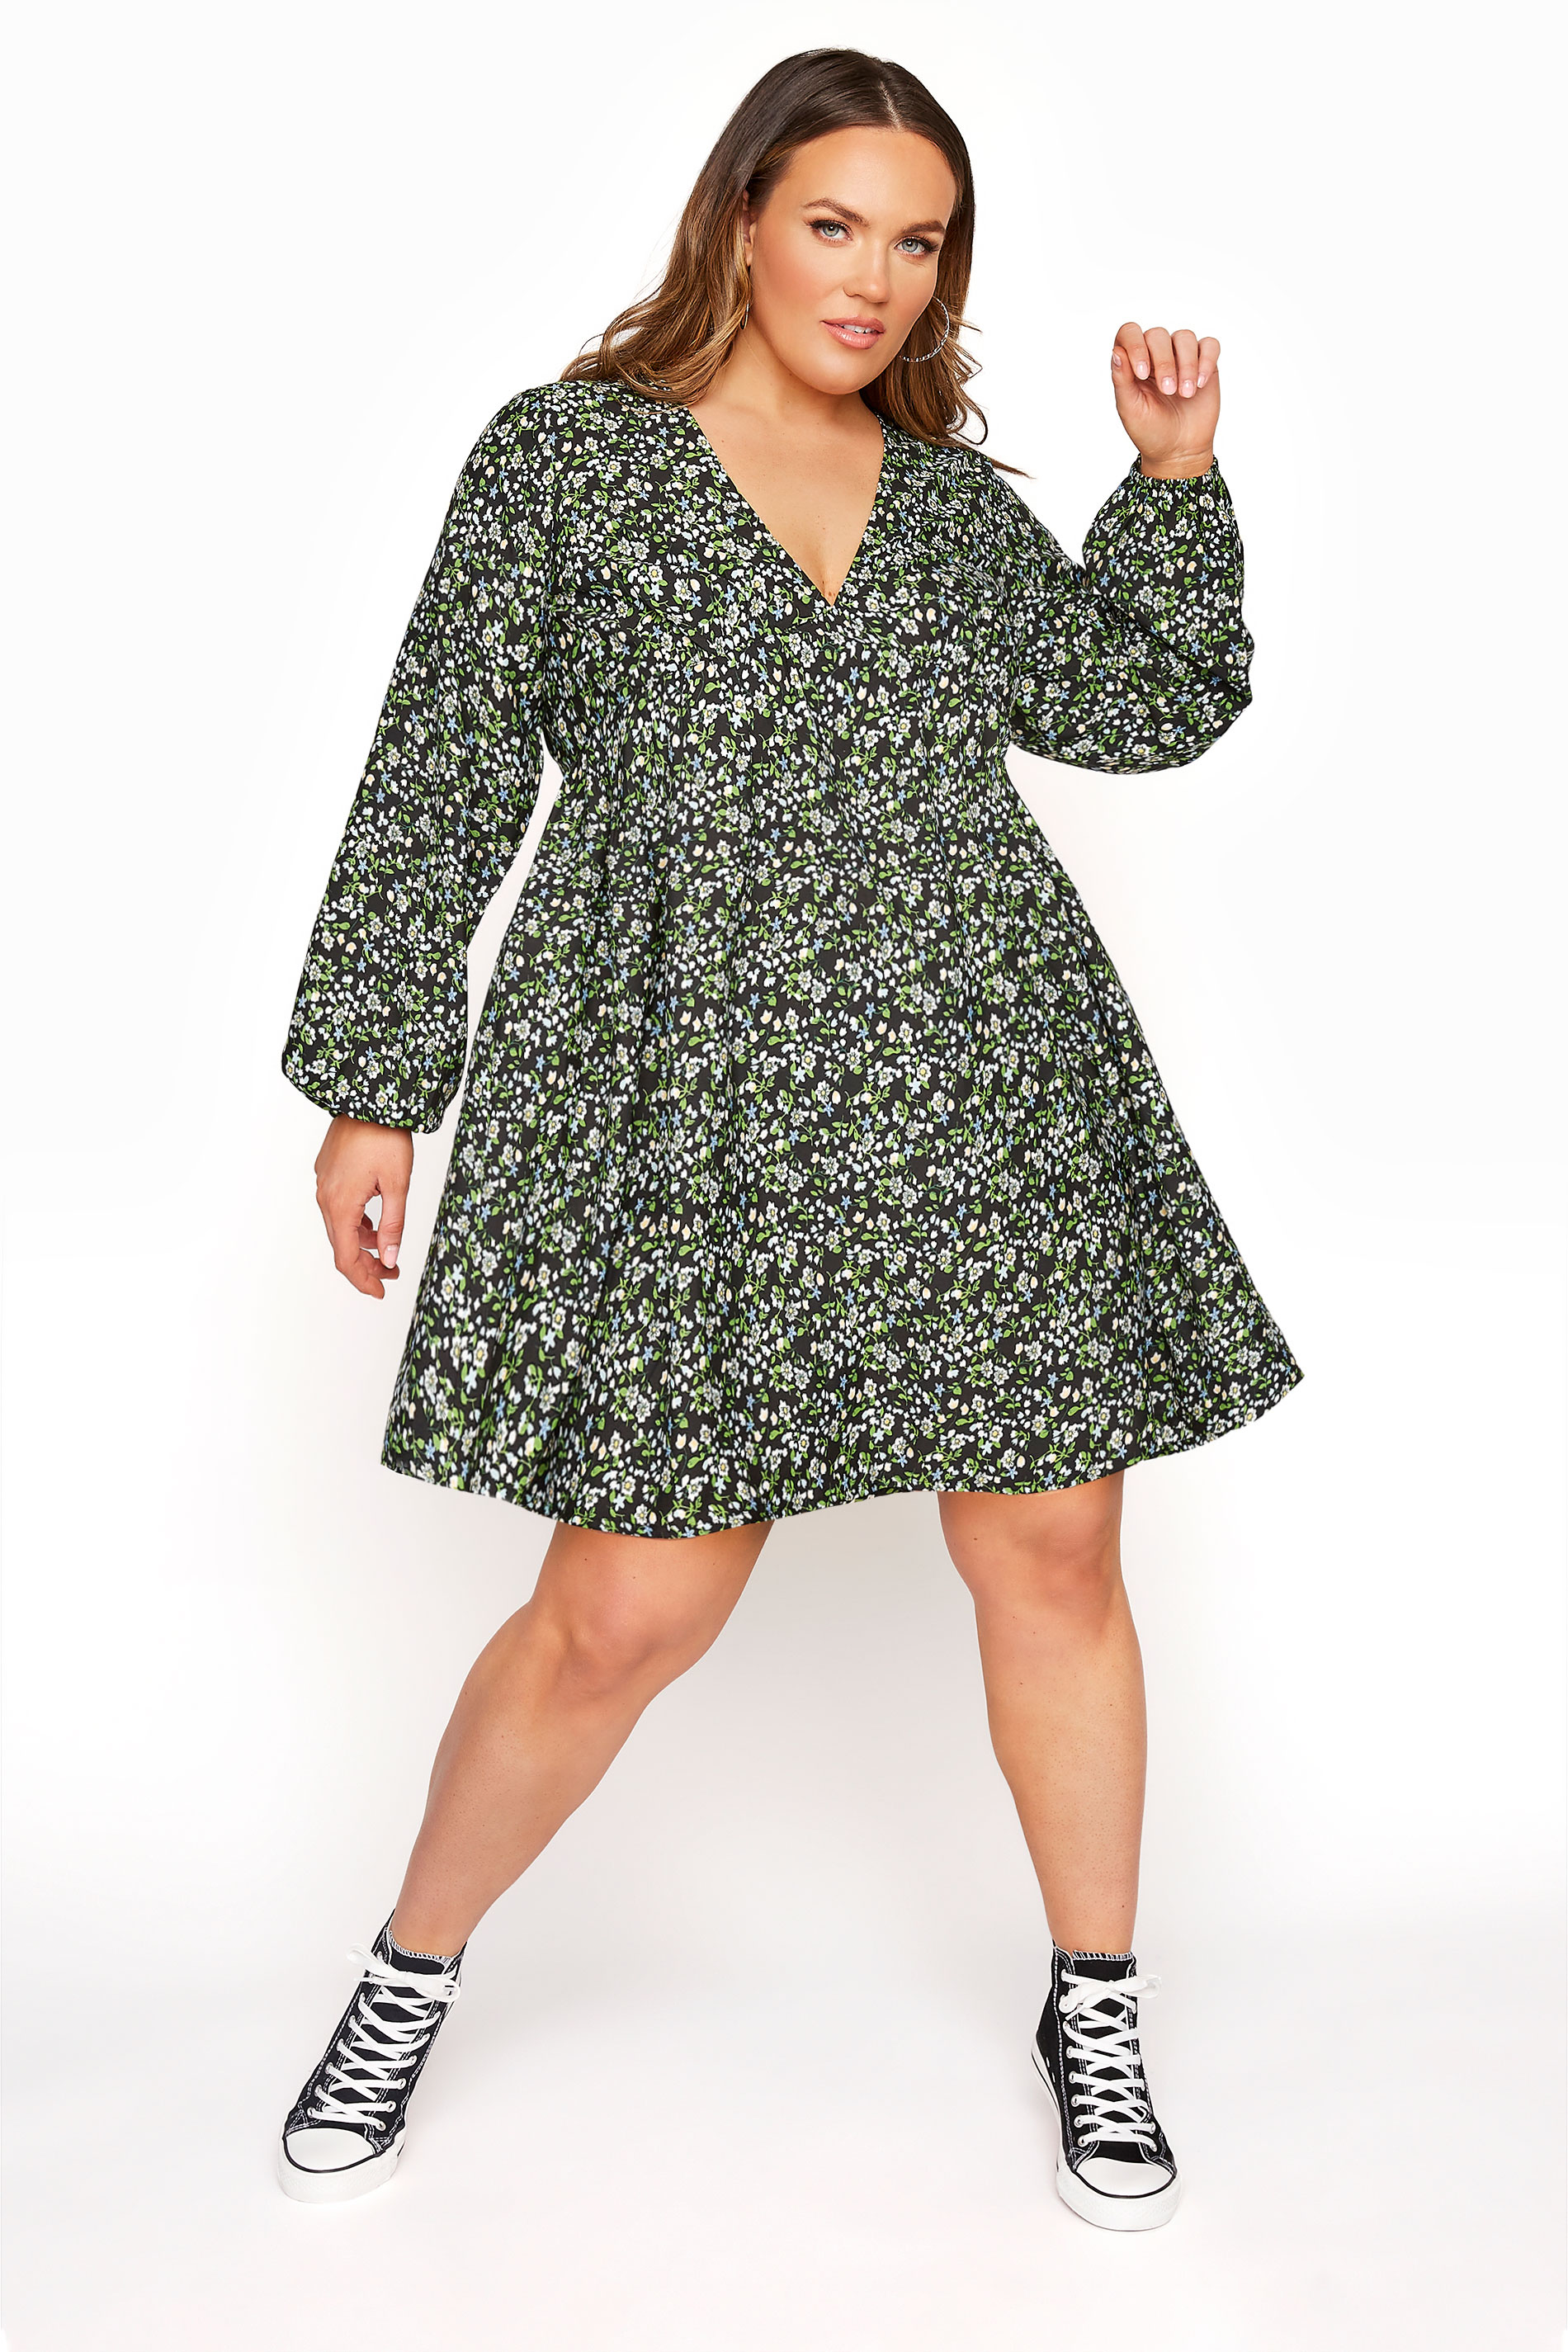 LIMITED COLLECTION Black & Green Ditsy Tea Dress_A.jpg